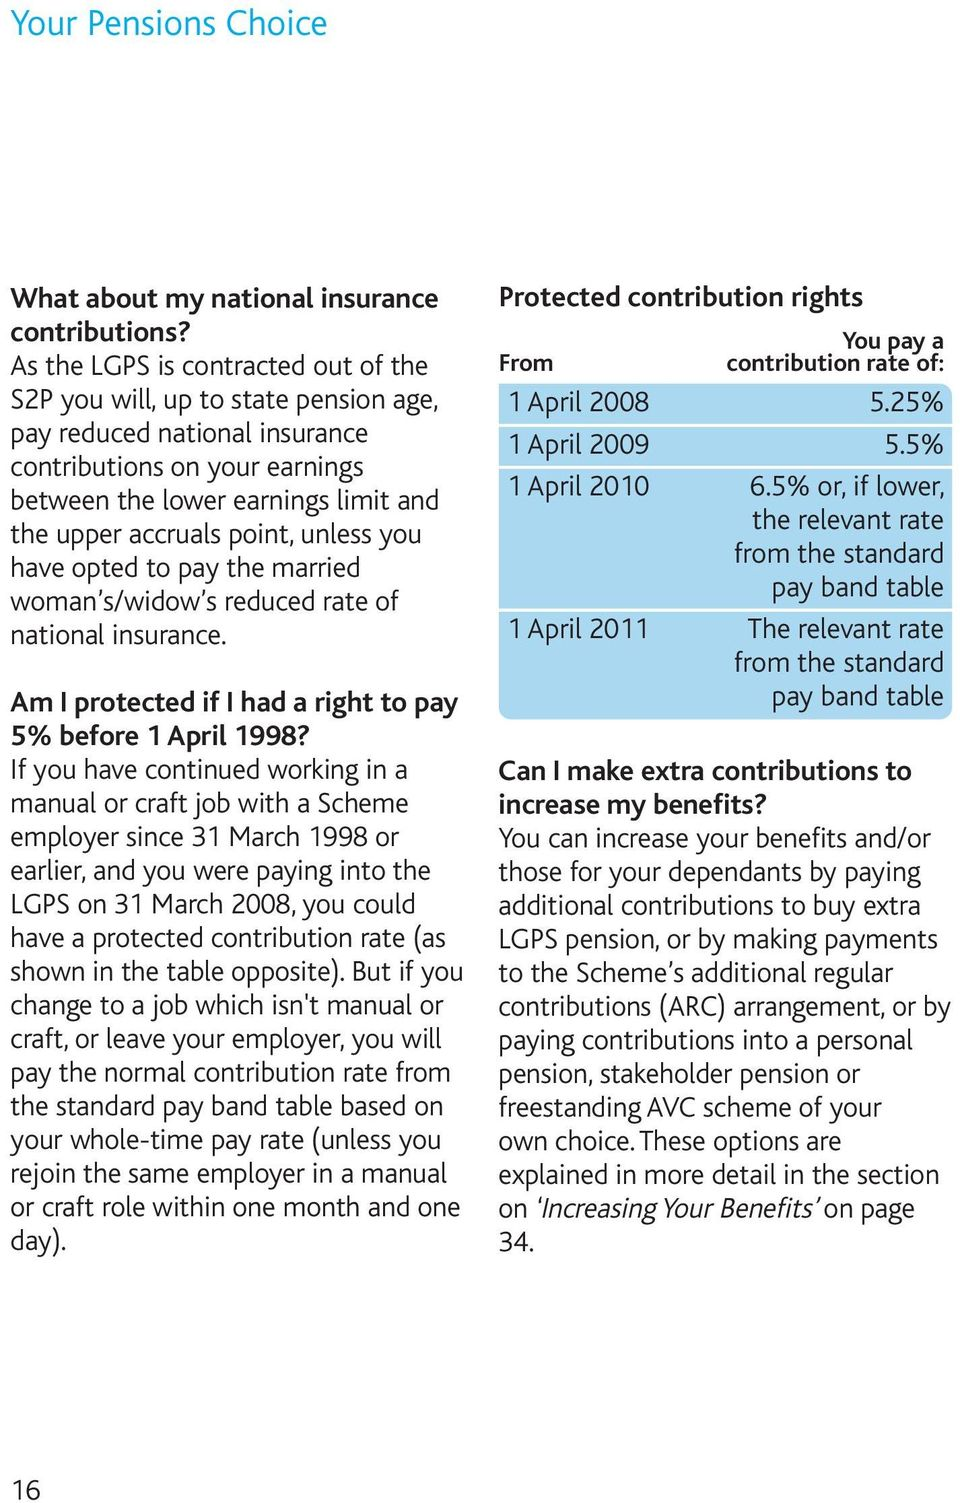 point, unless you have opted to pay the married woman s/widow s reduced rate of national insurance. Am I protected if I had a right to pay 5% before 1 April 1998?